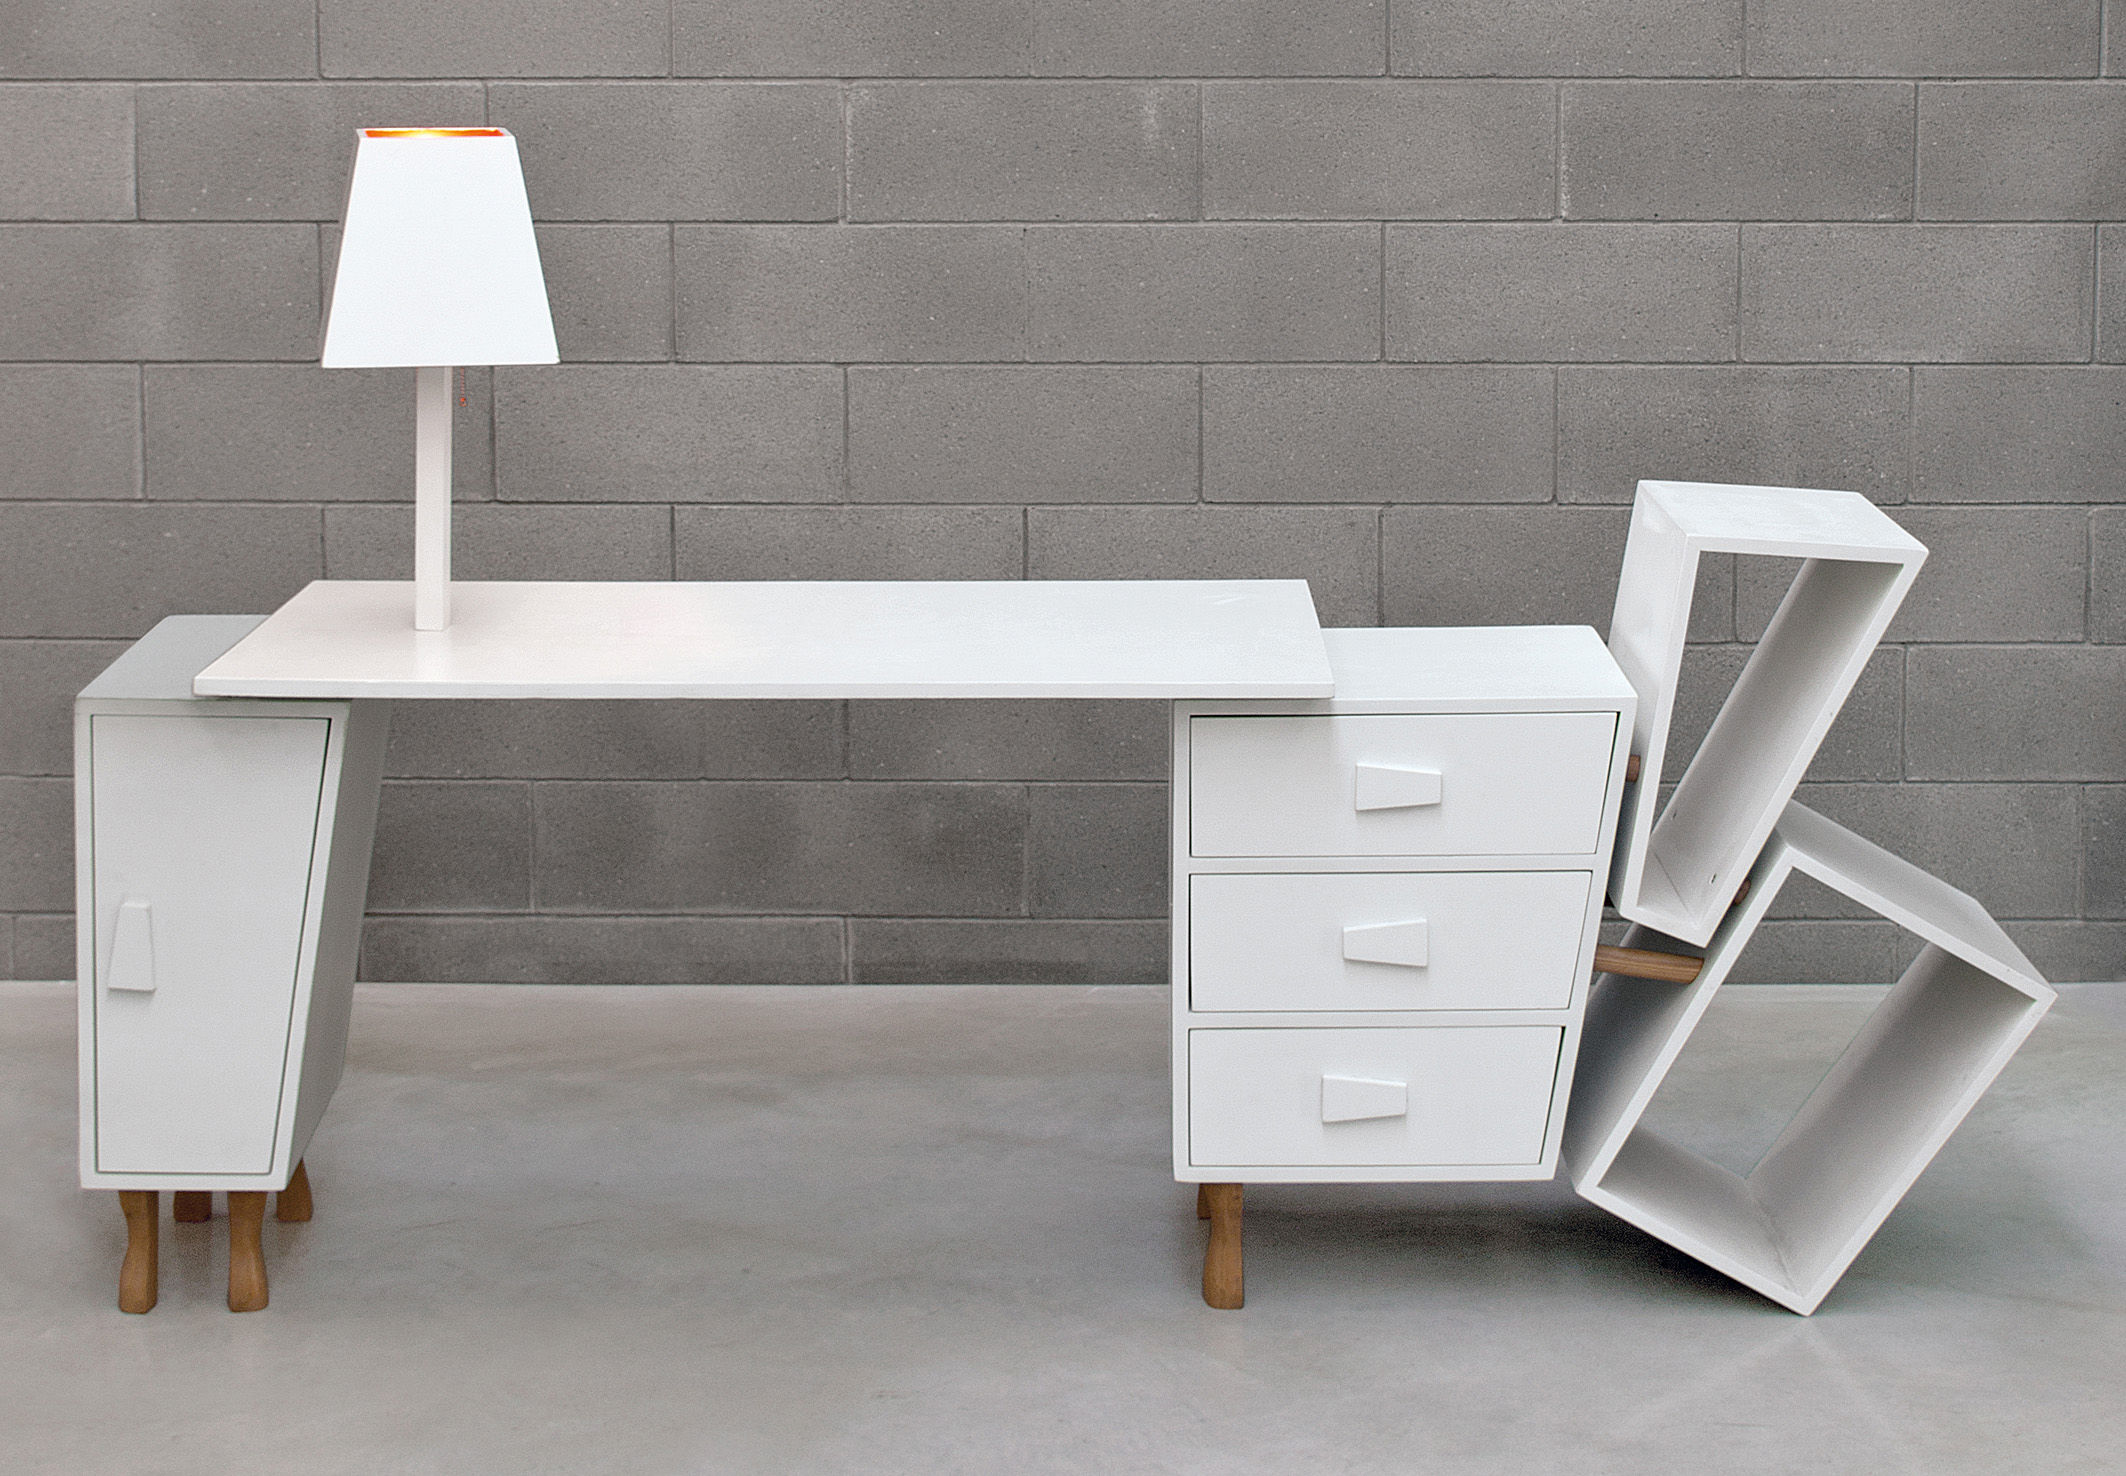 bureau kenn plateau extensible rangements et lampe int gr s blanc bois seletti. Black Bedroom Furniture Sets. Home Design Ideas